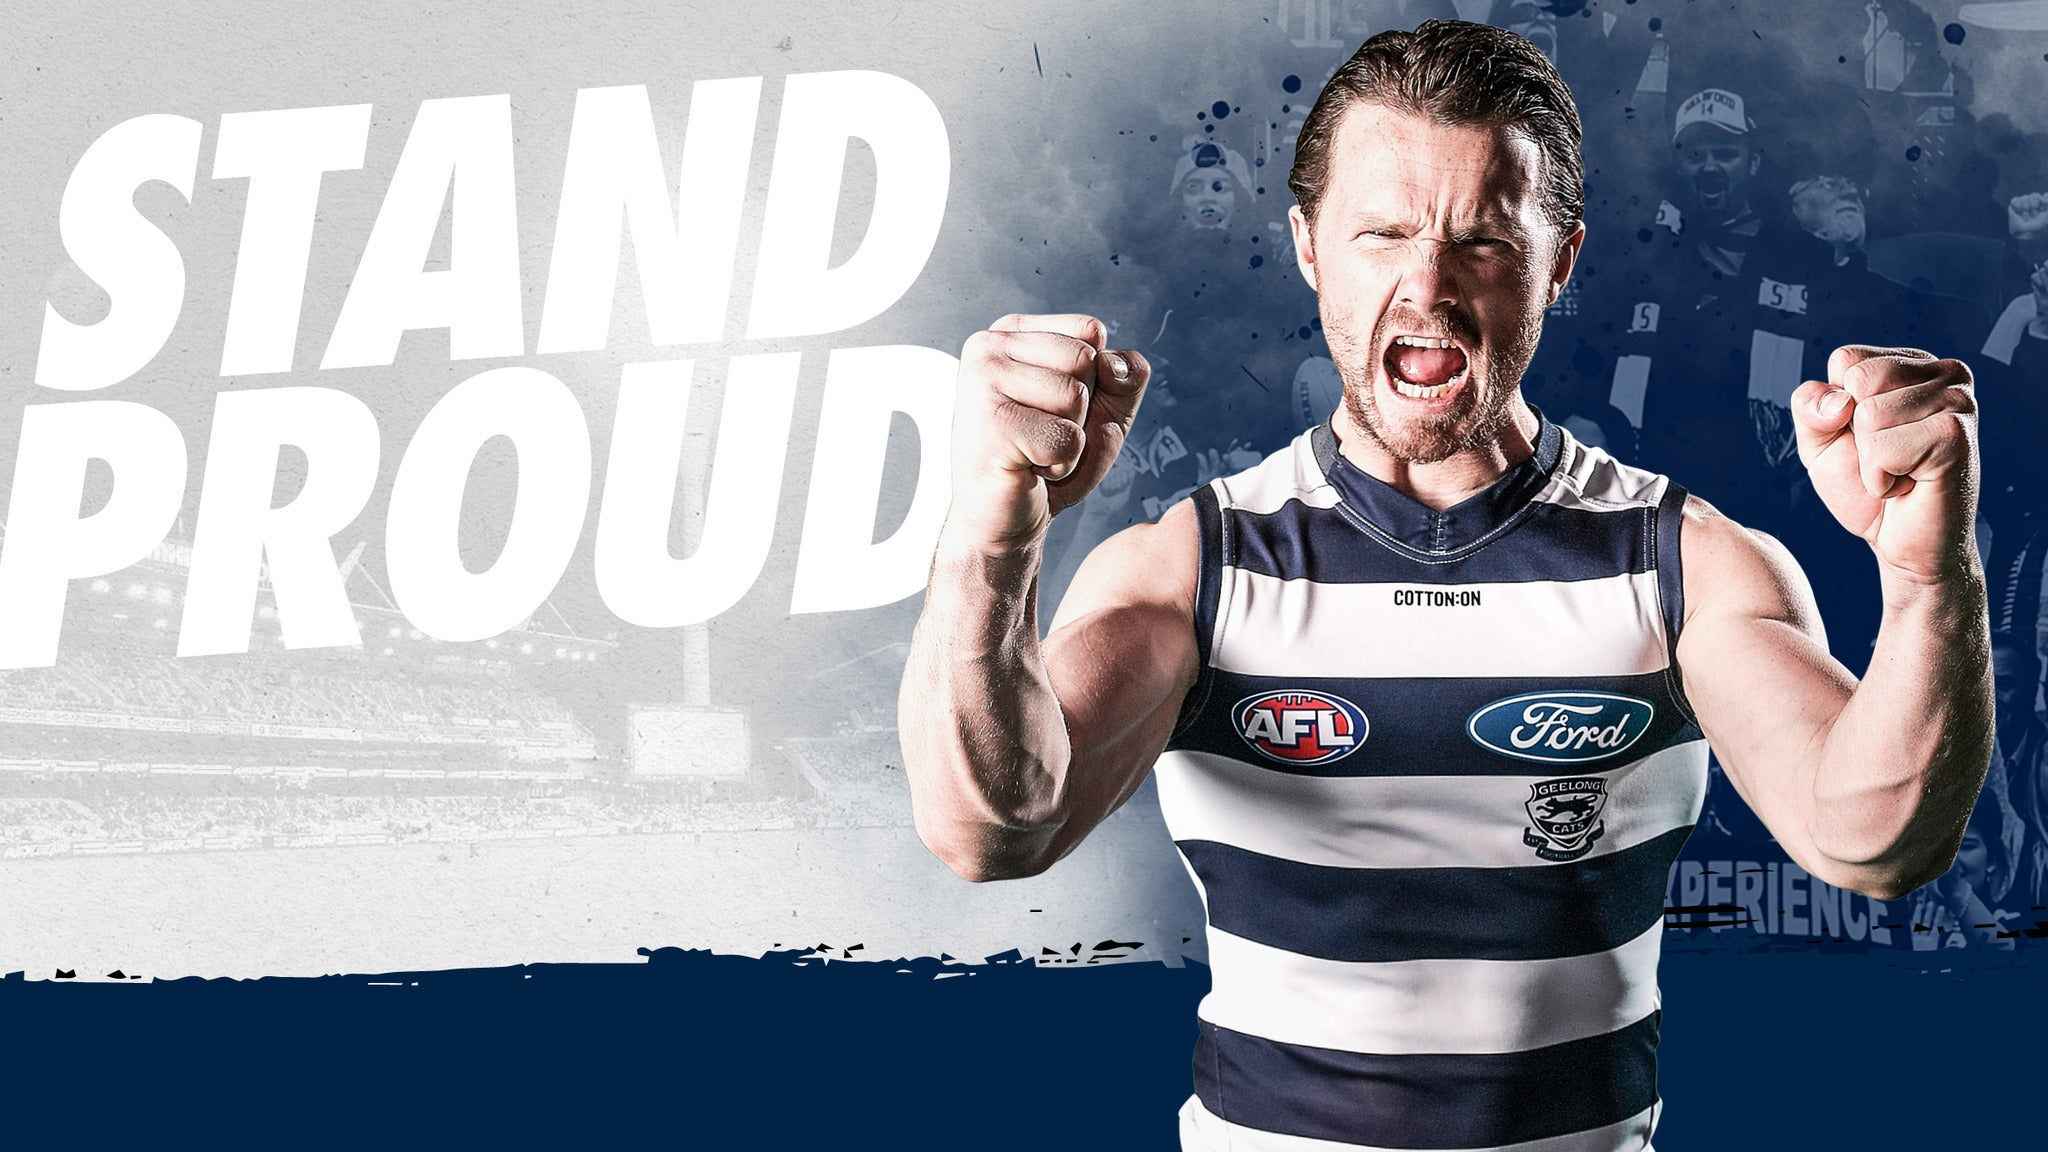 Geelong Cats vs. Hawthorn